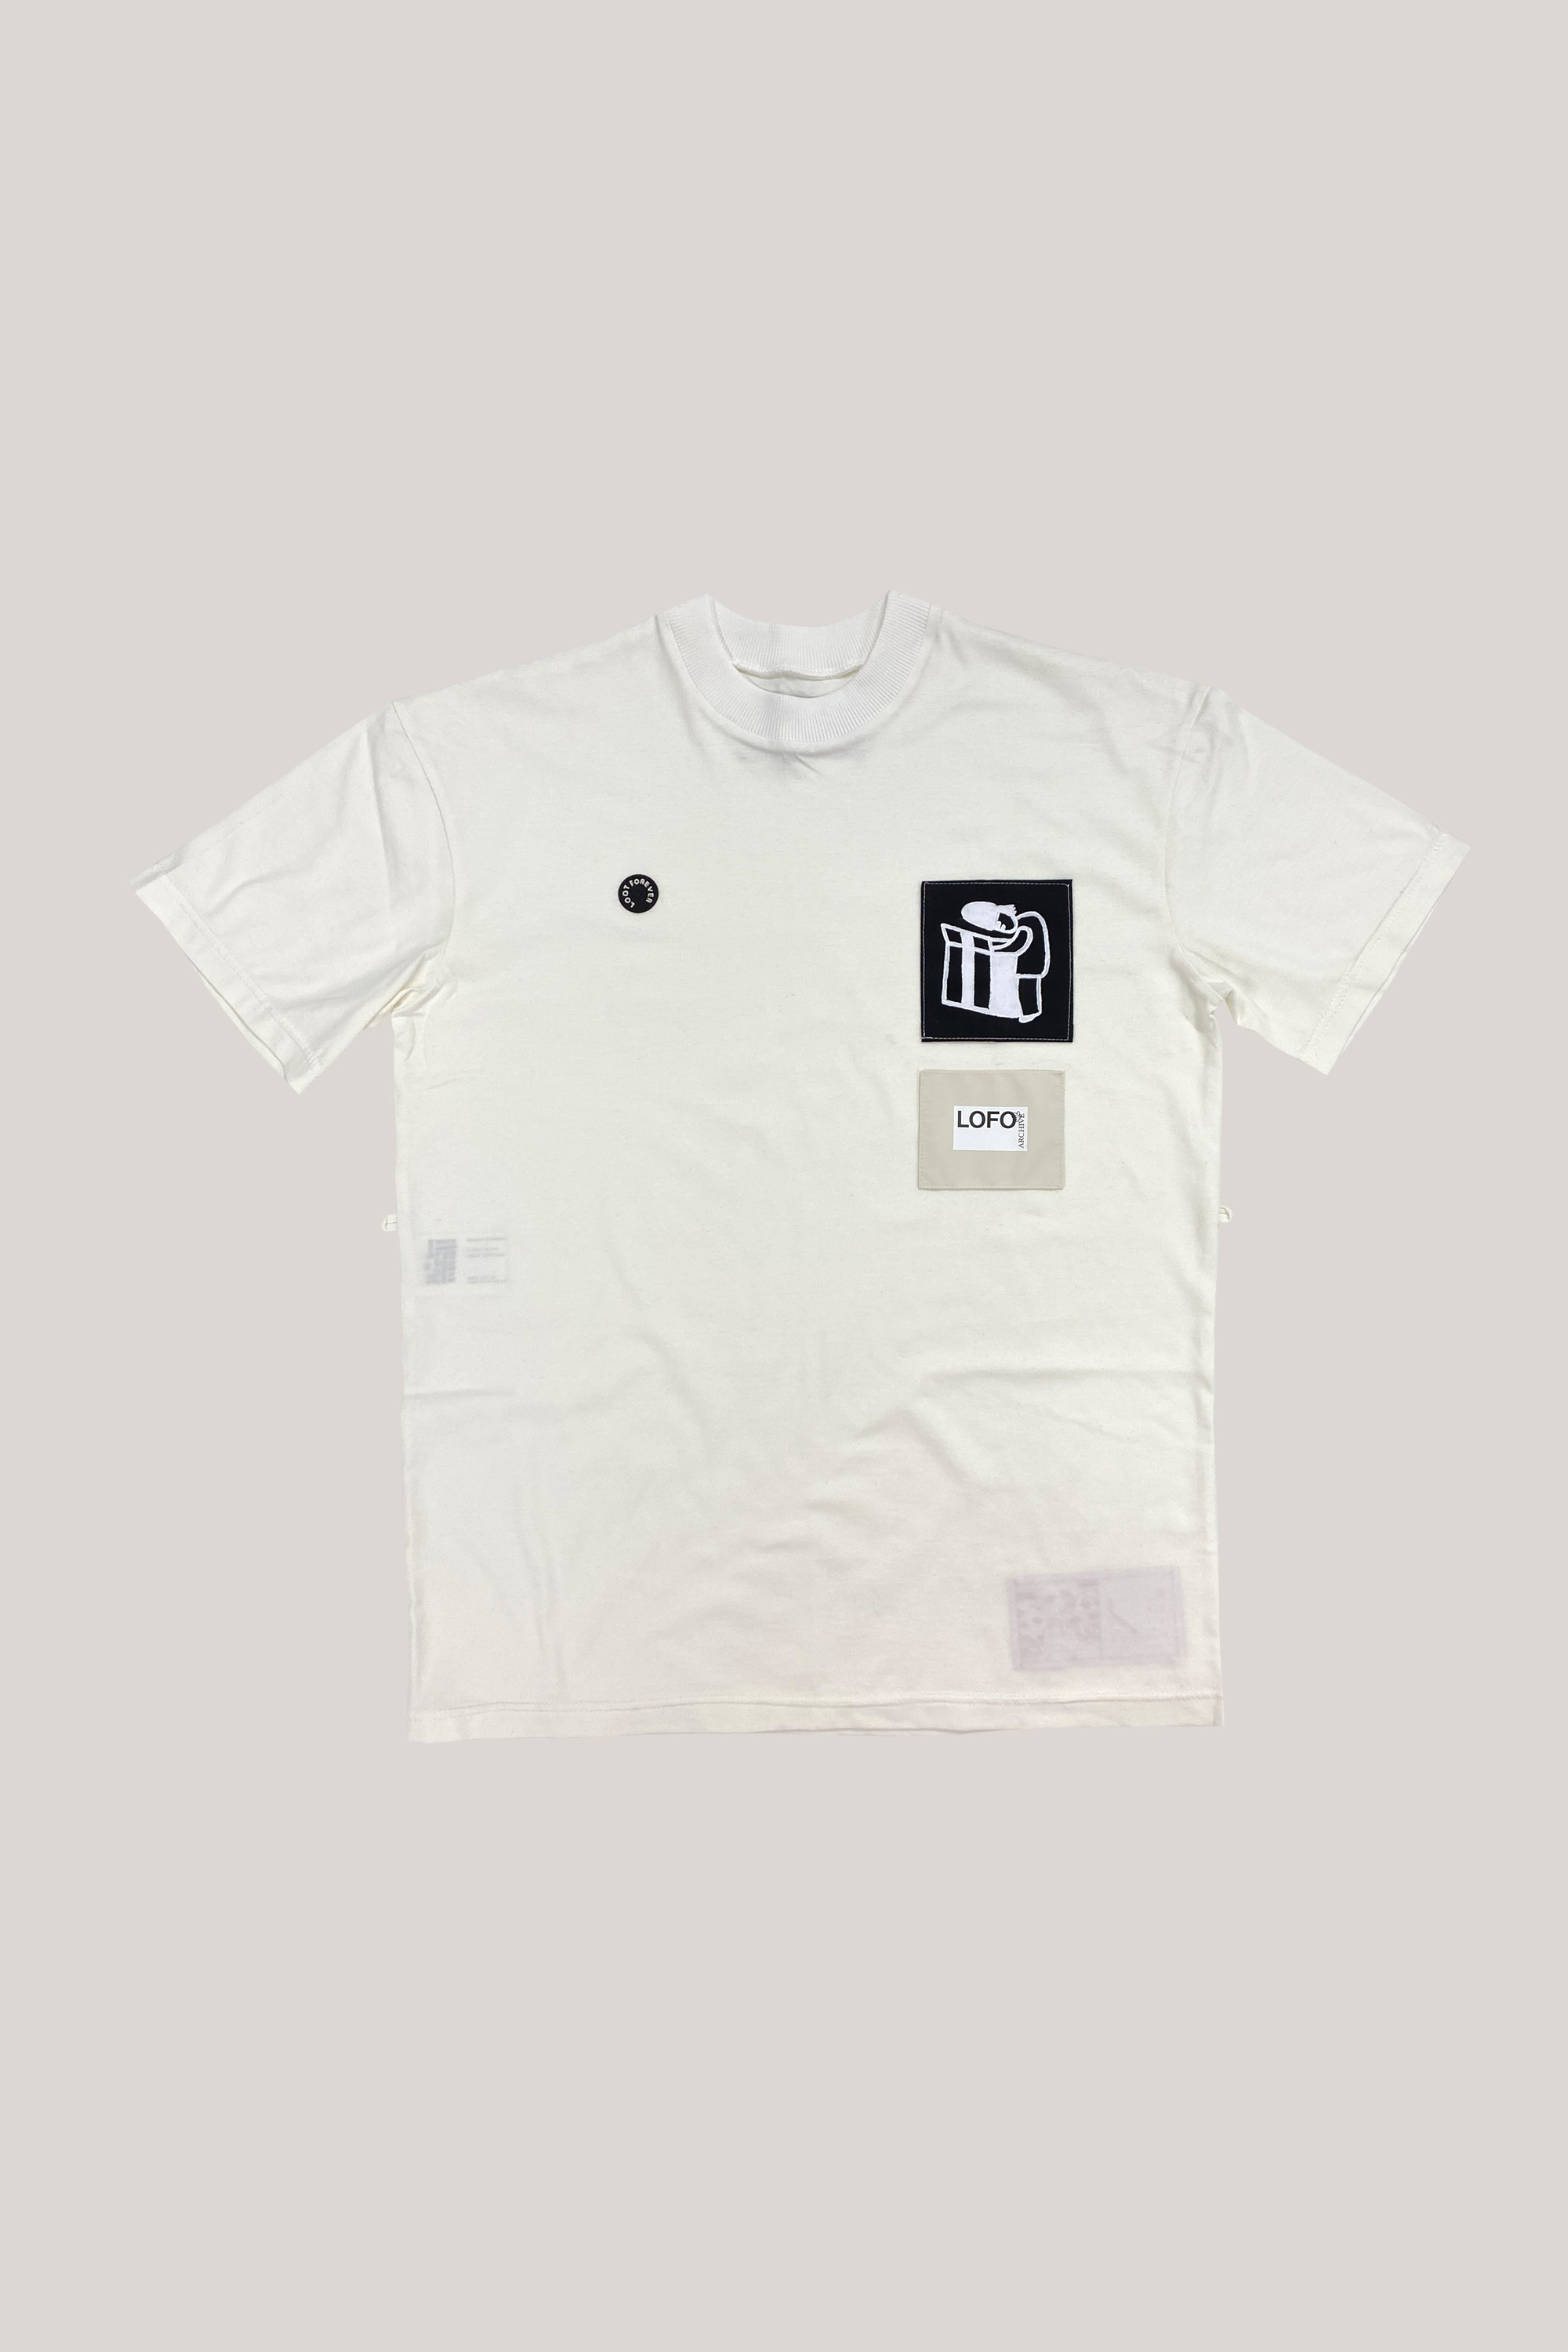 26-Tshirt-Offwhite-Front